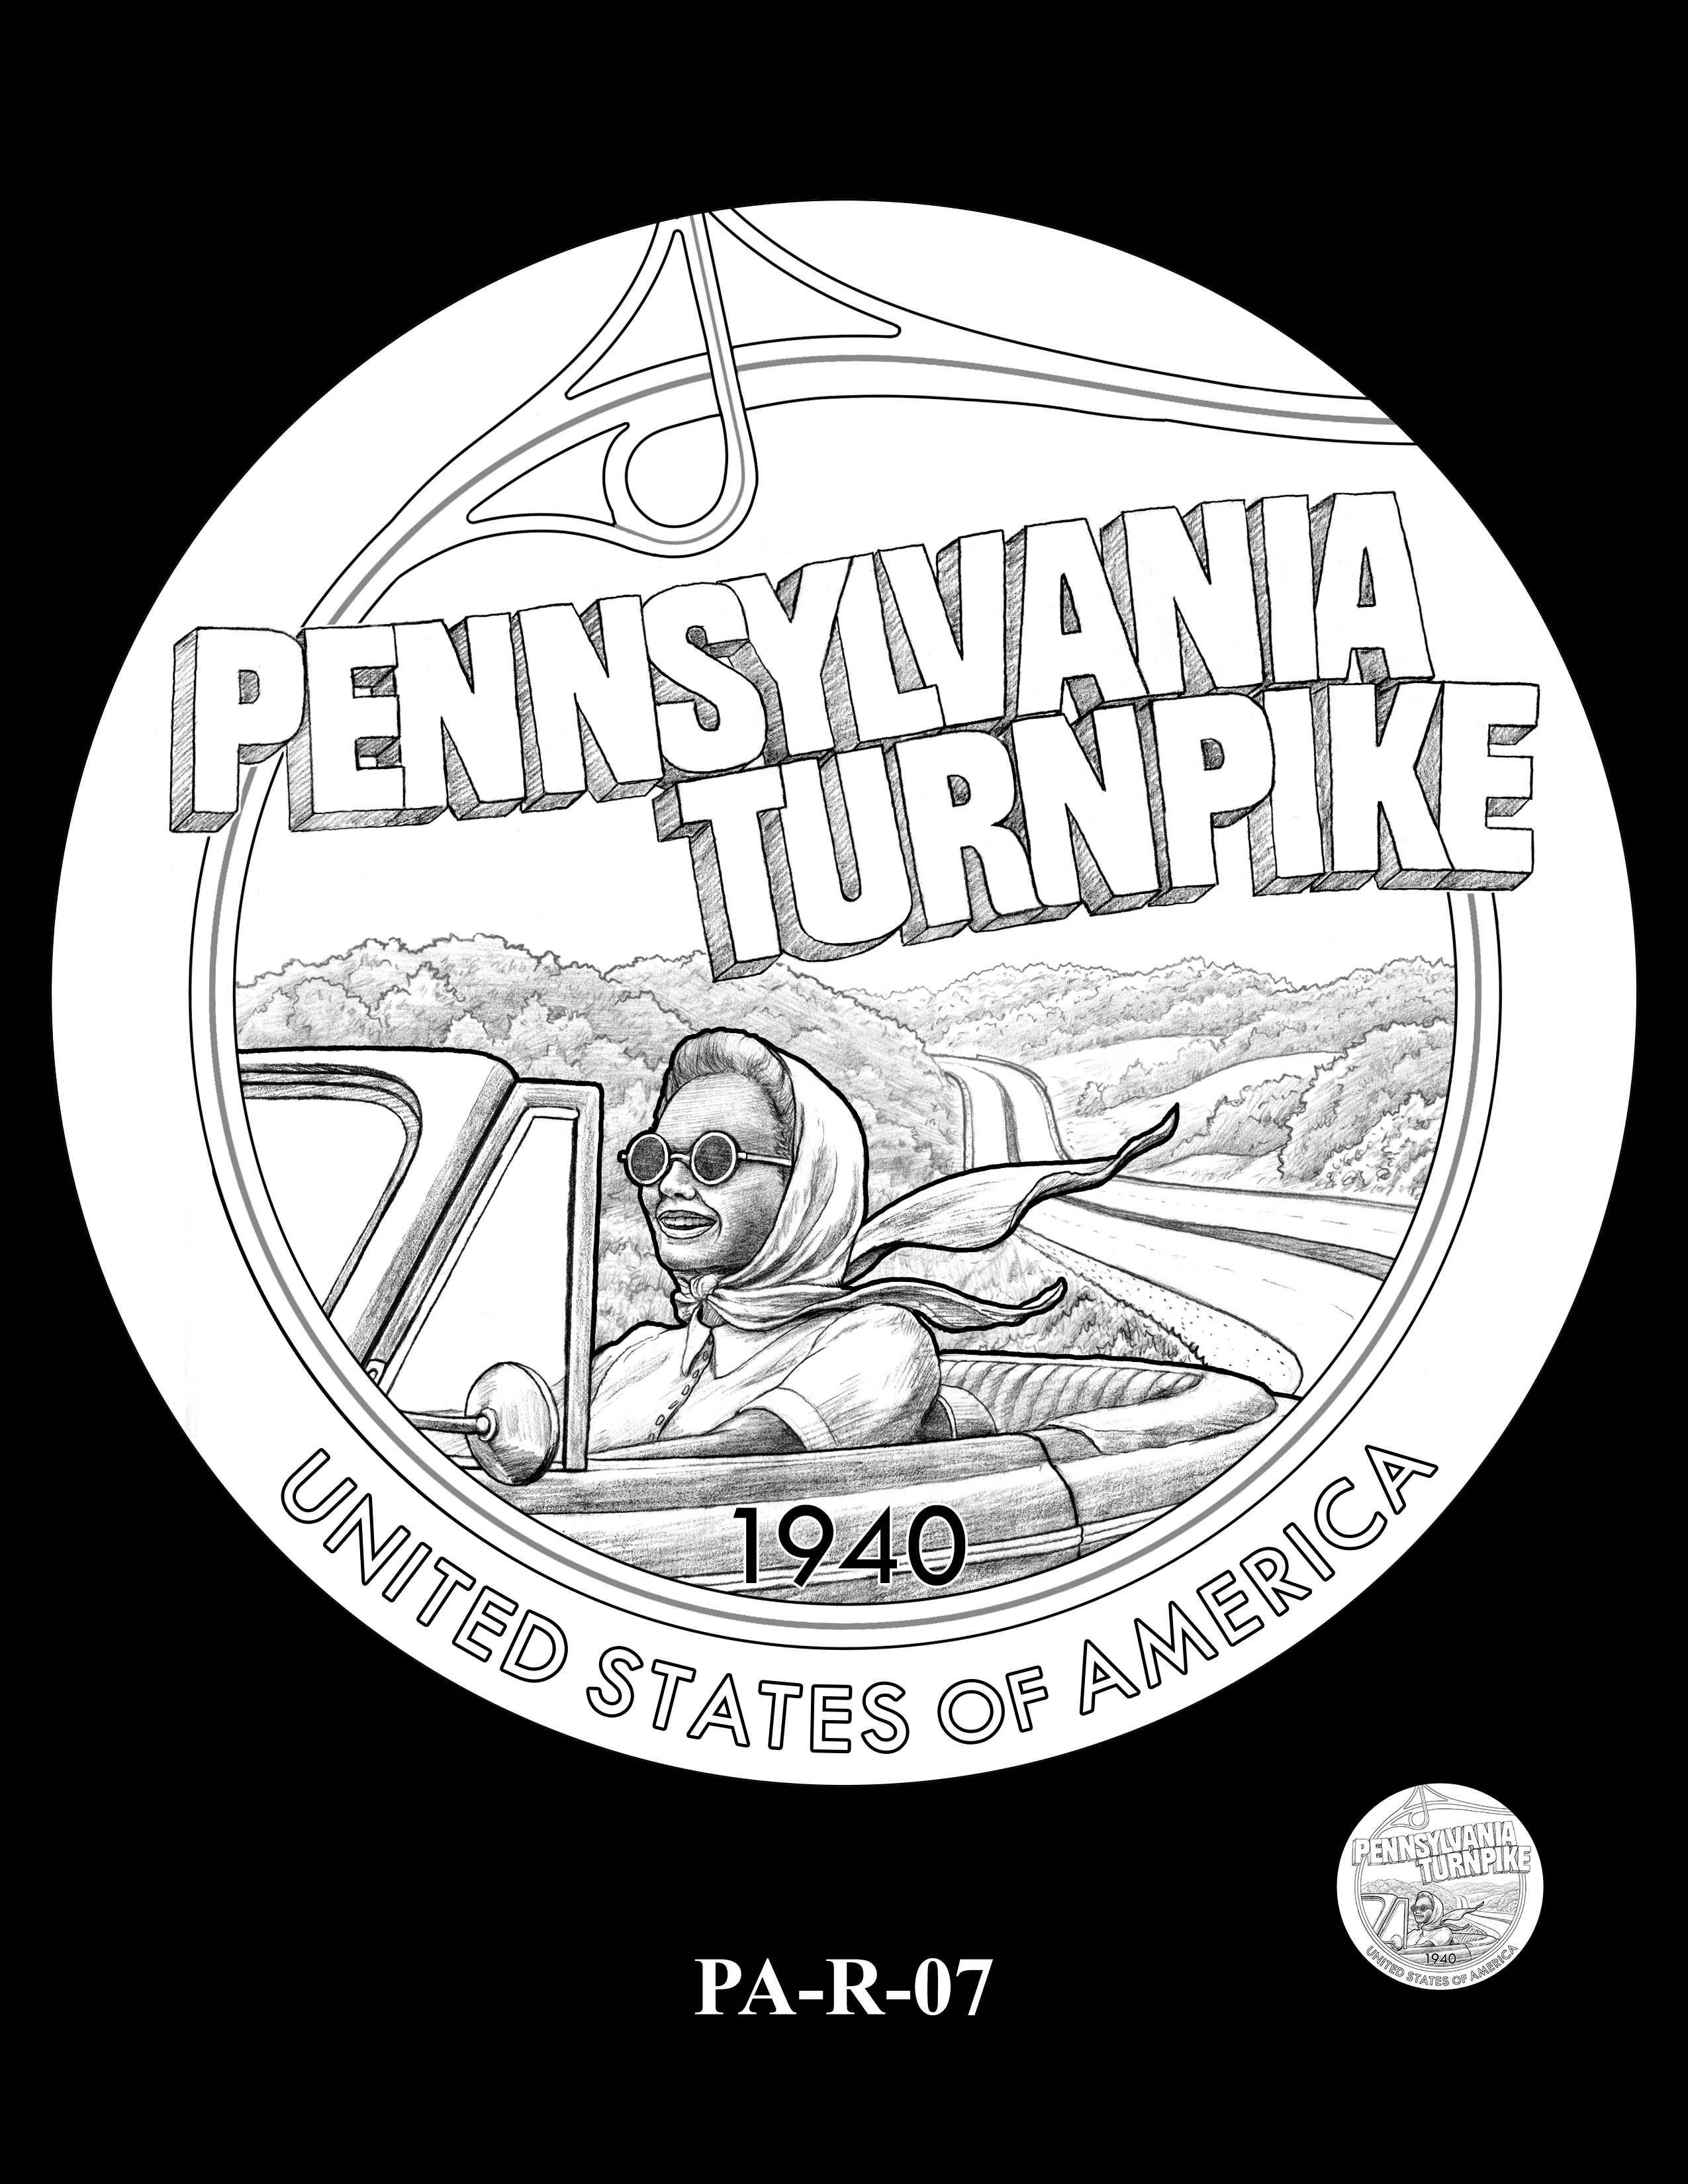 PA-R-07 -- 2019 American Innovation $1 Coin Program